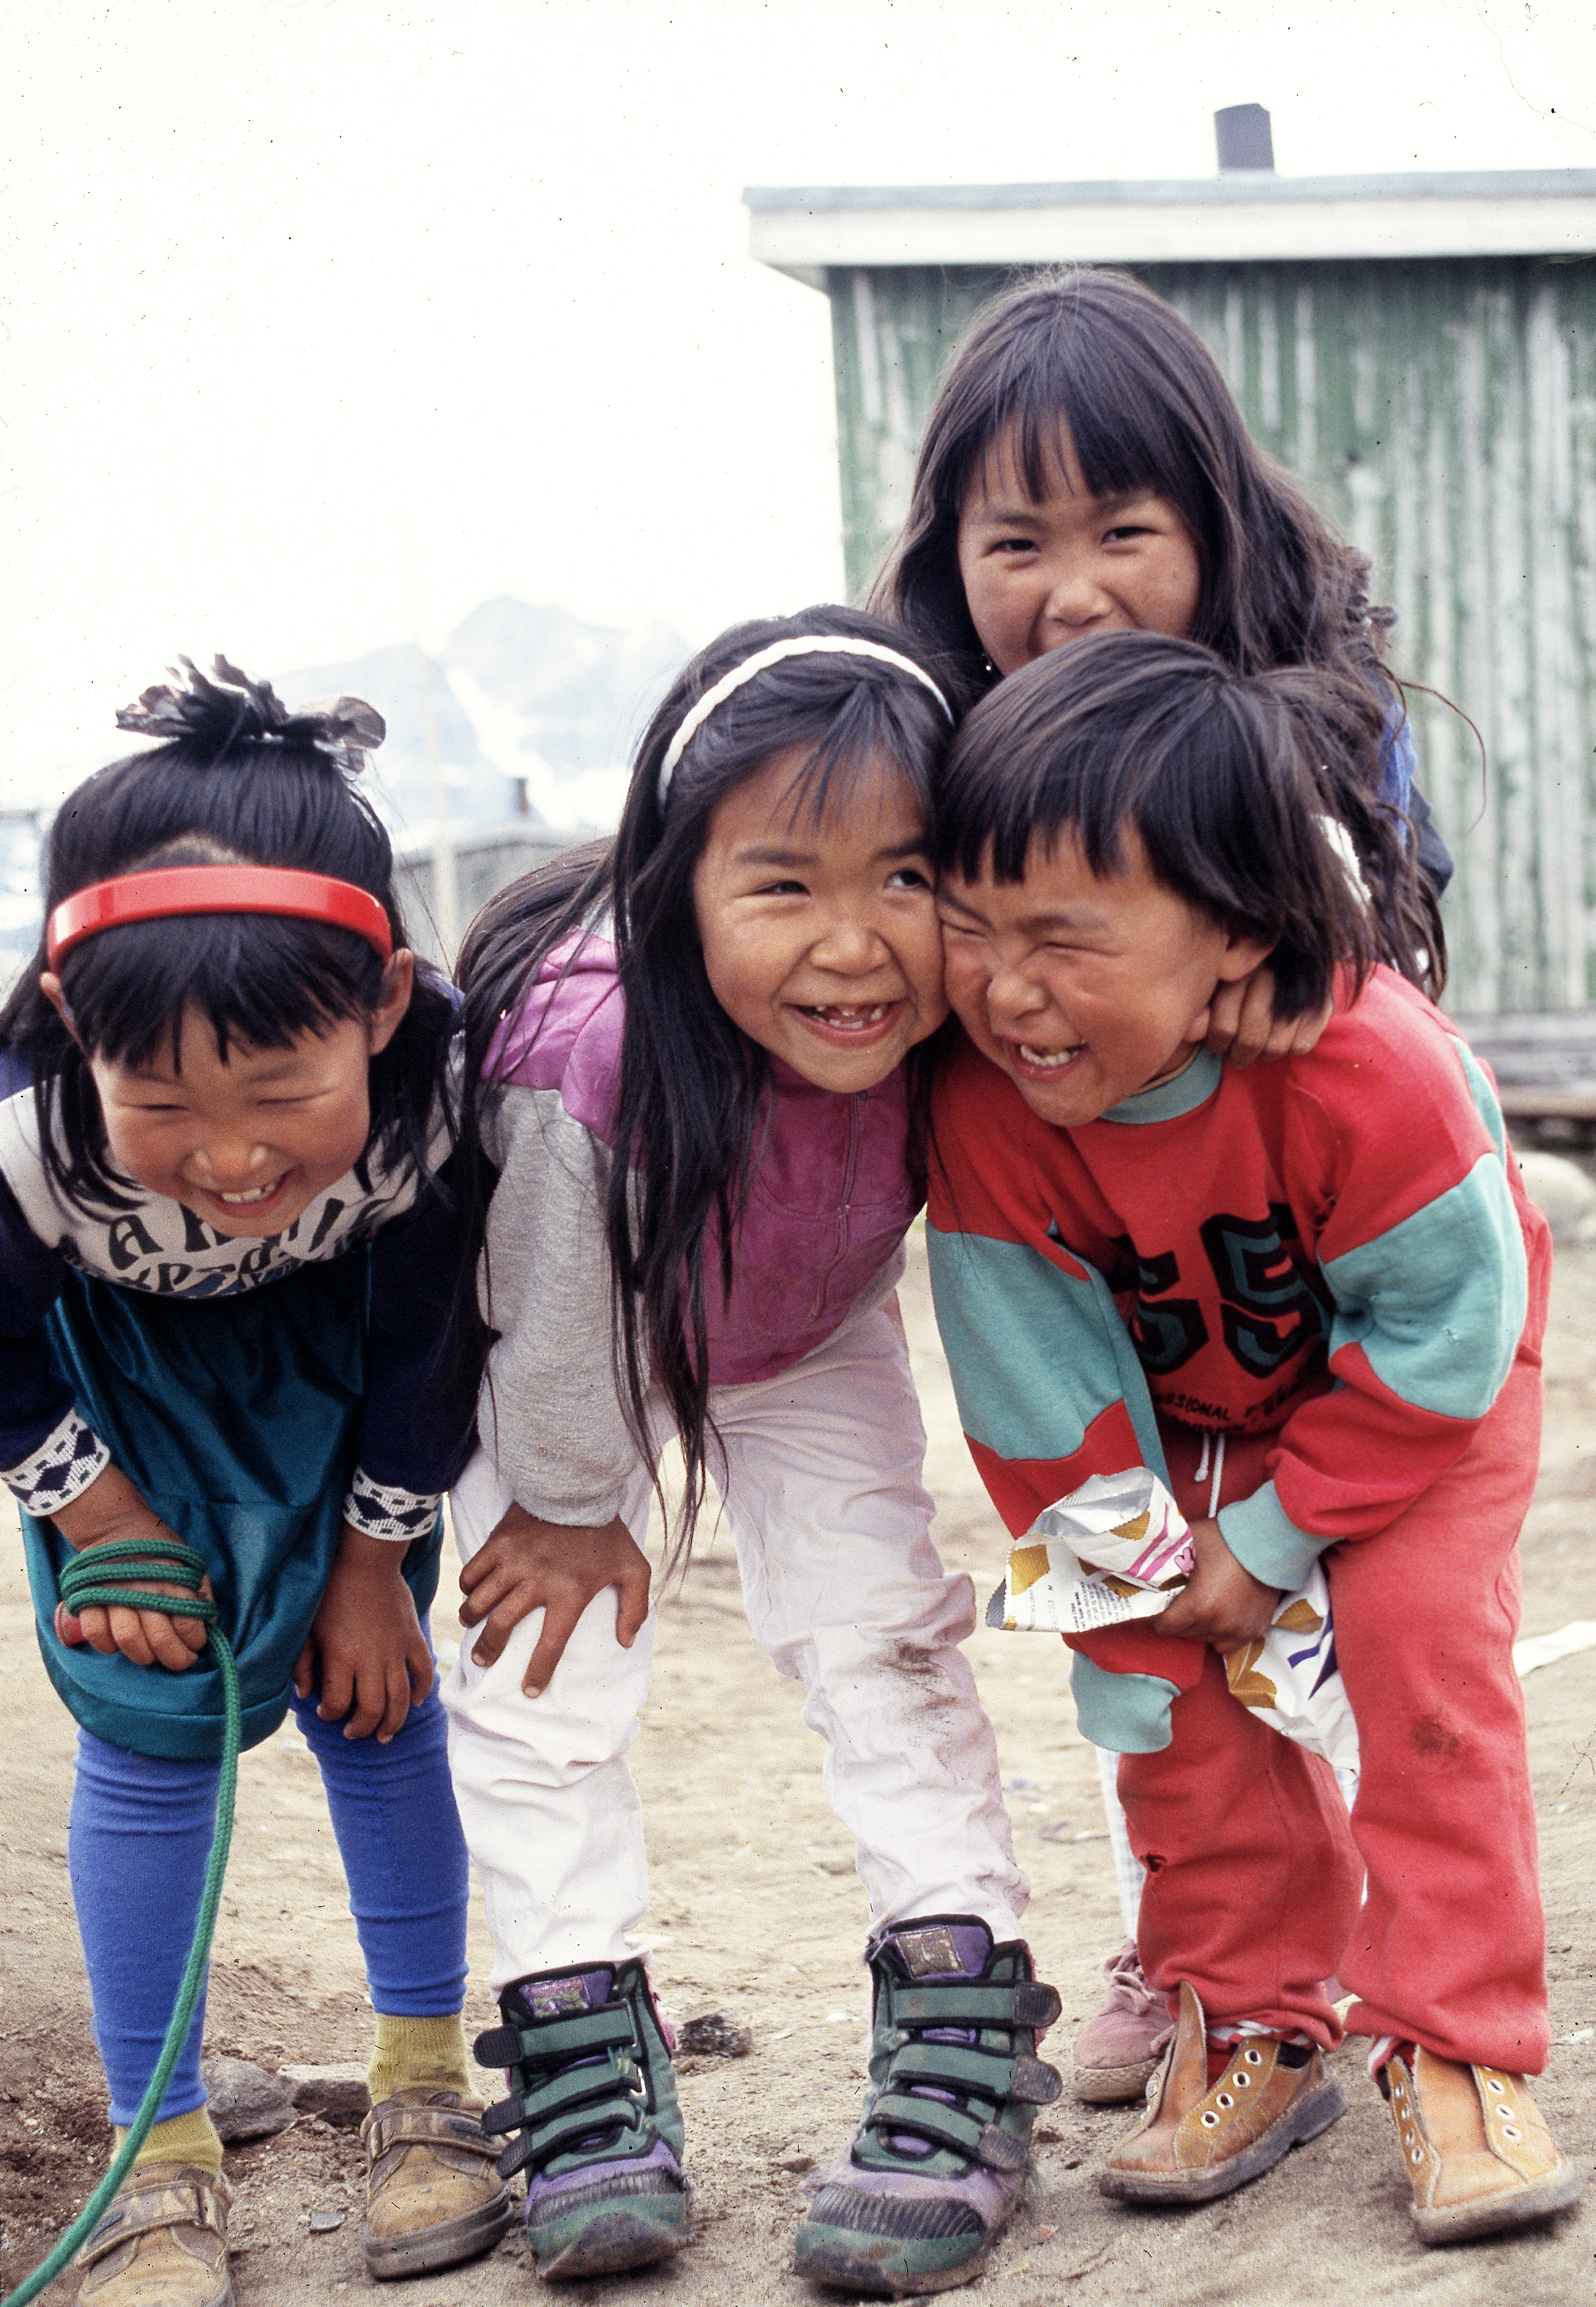 Children in Kungmiut, East Greenland 1993